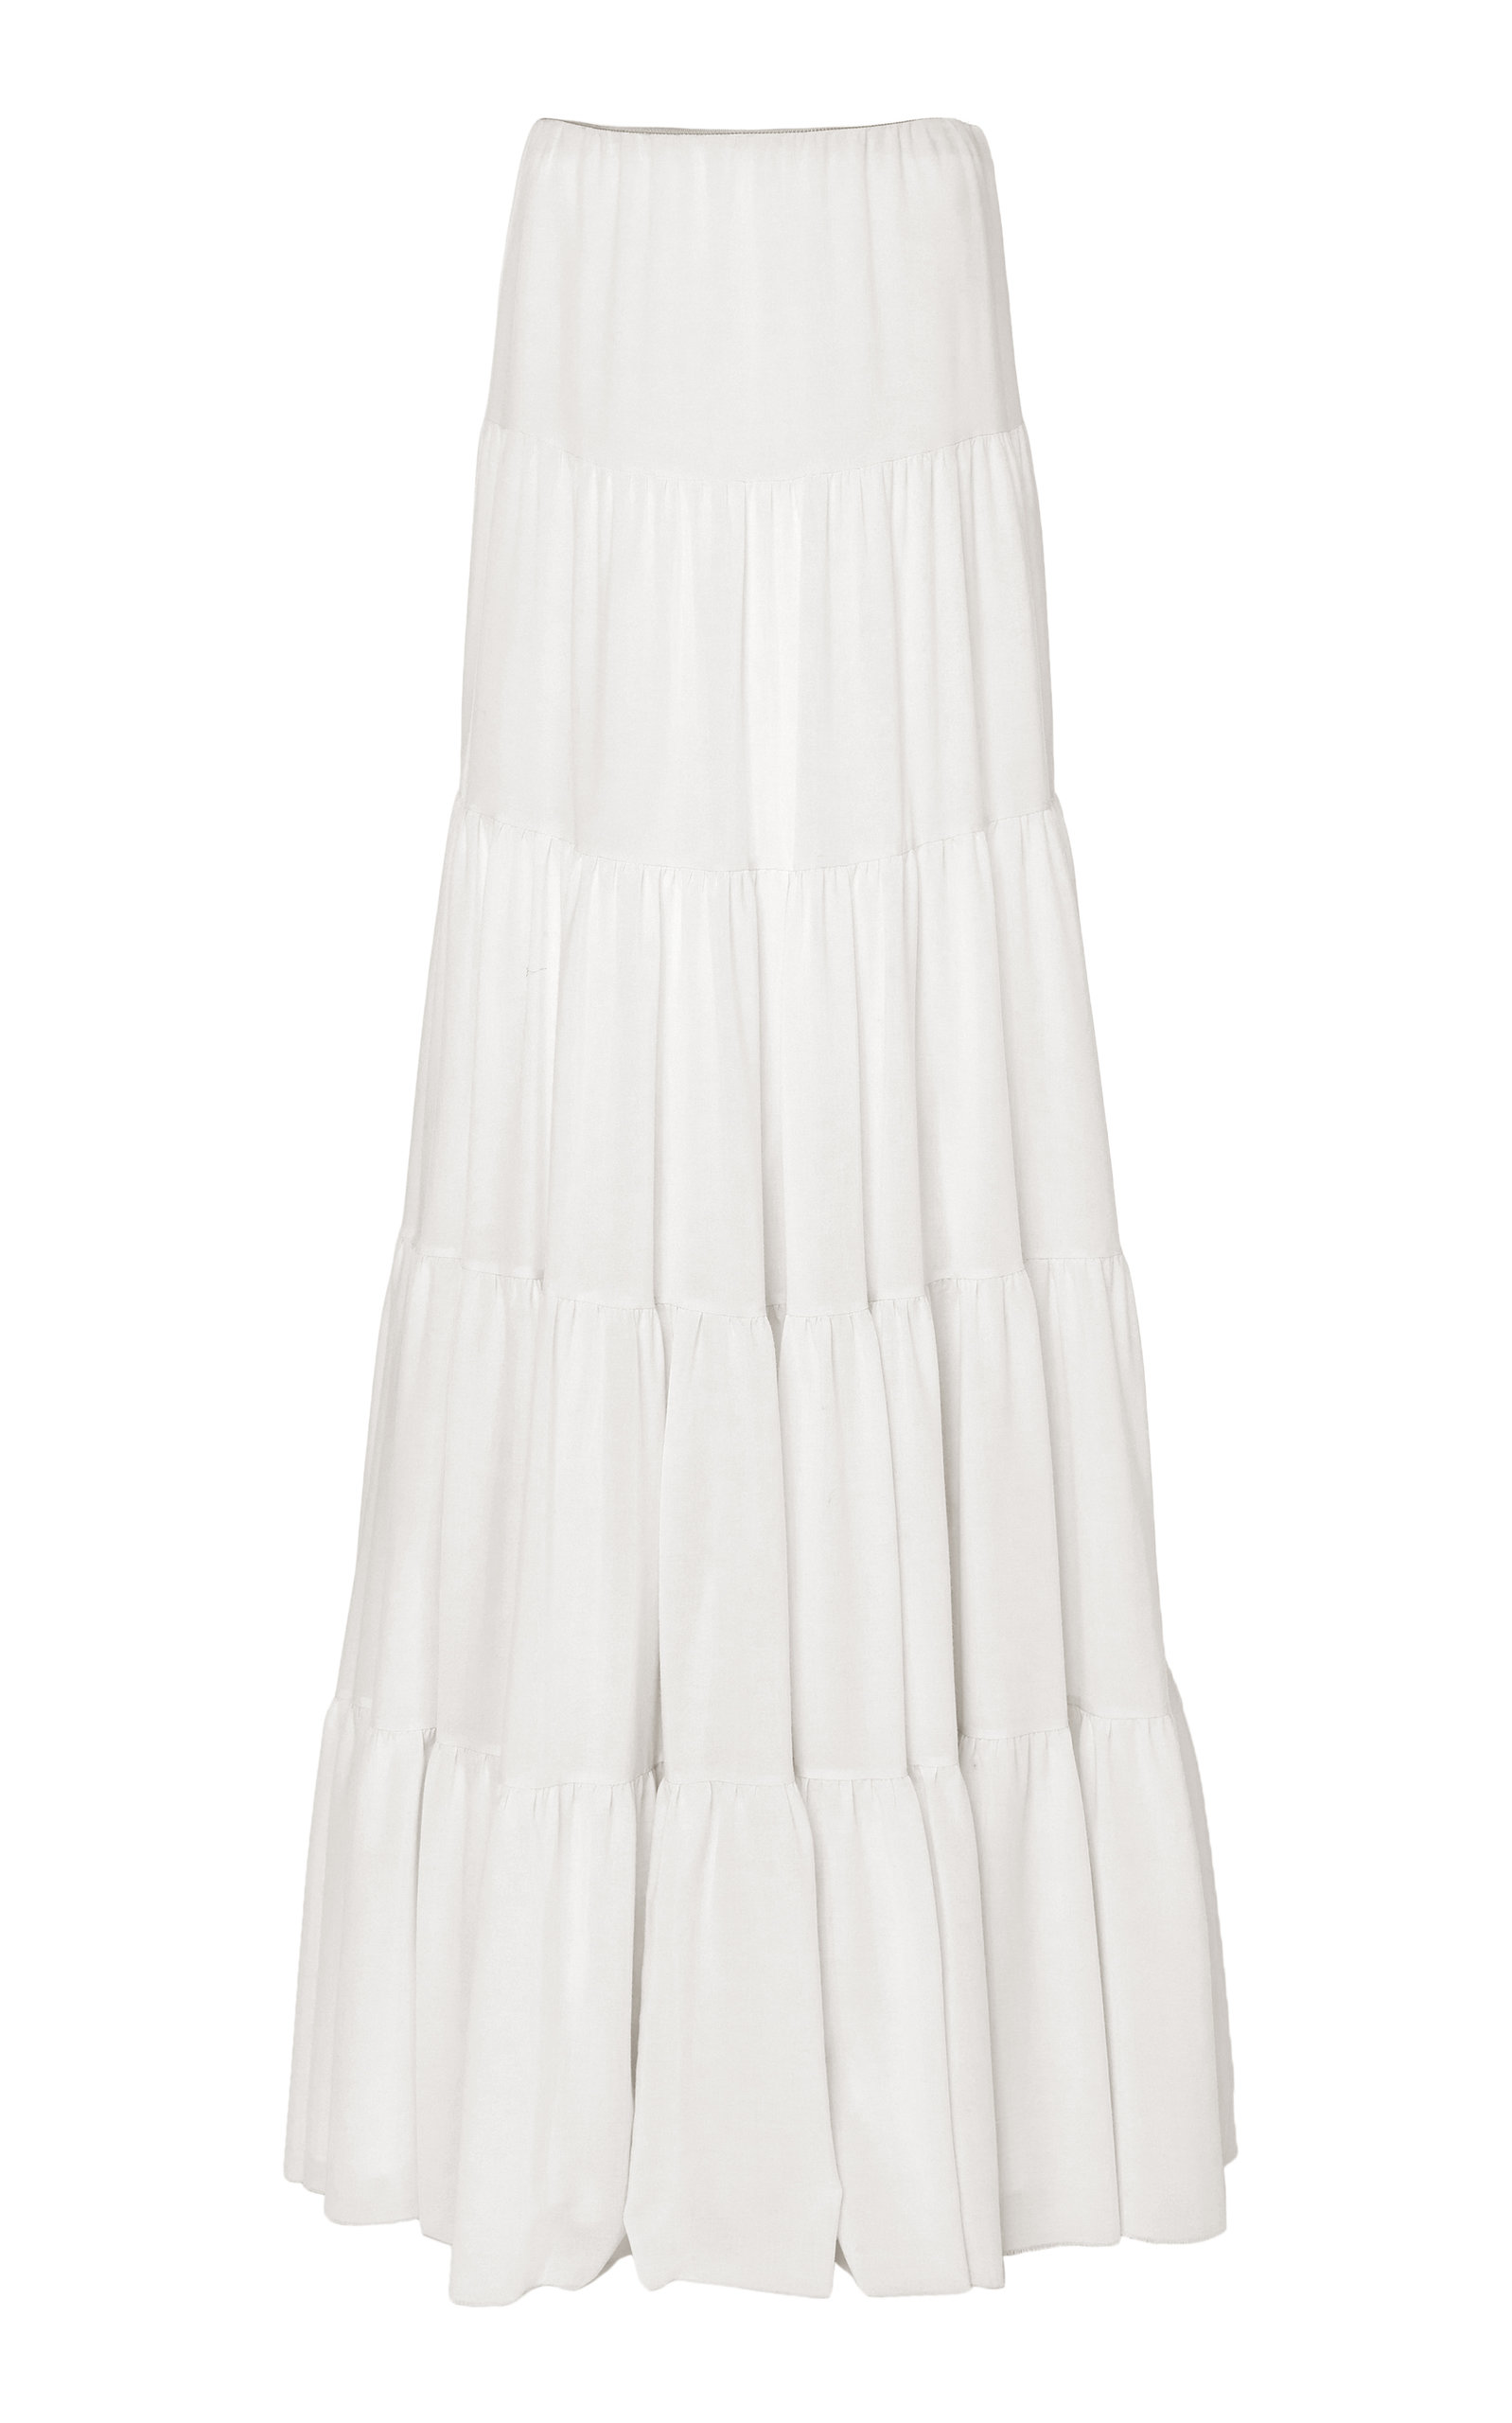 Gabriela Hearst Skirts Mariela Wool And Cashmere Blend Tiered Maxi Skirt